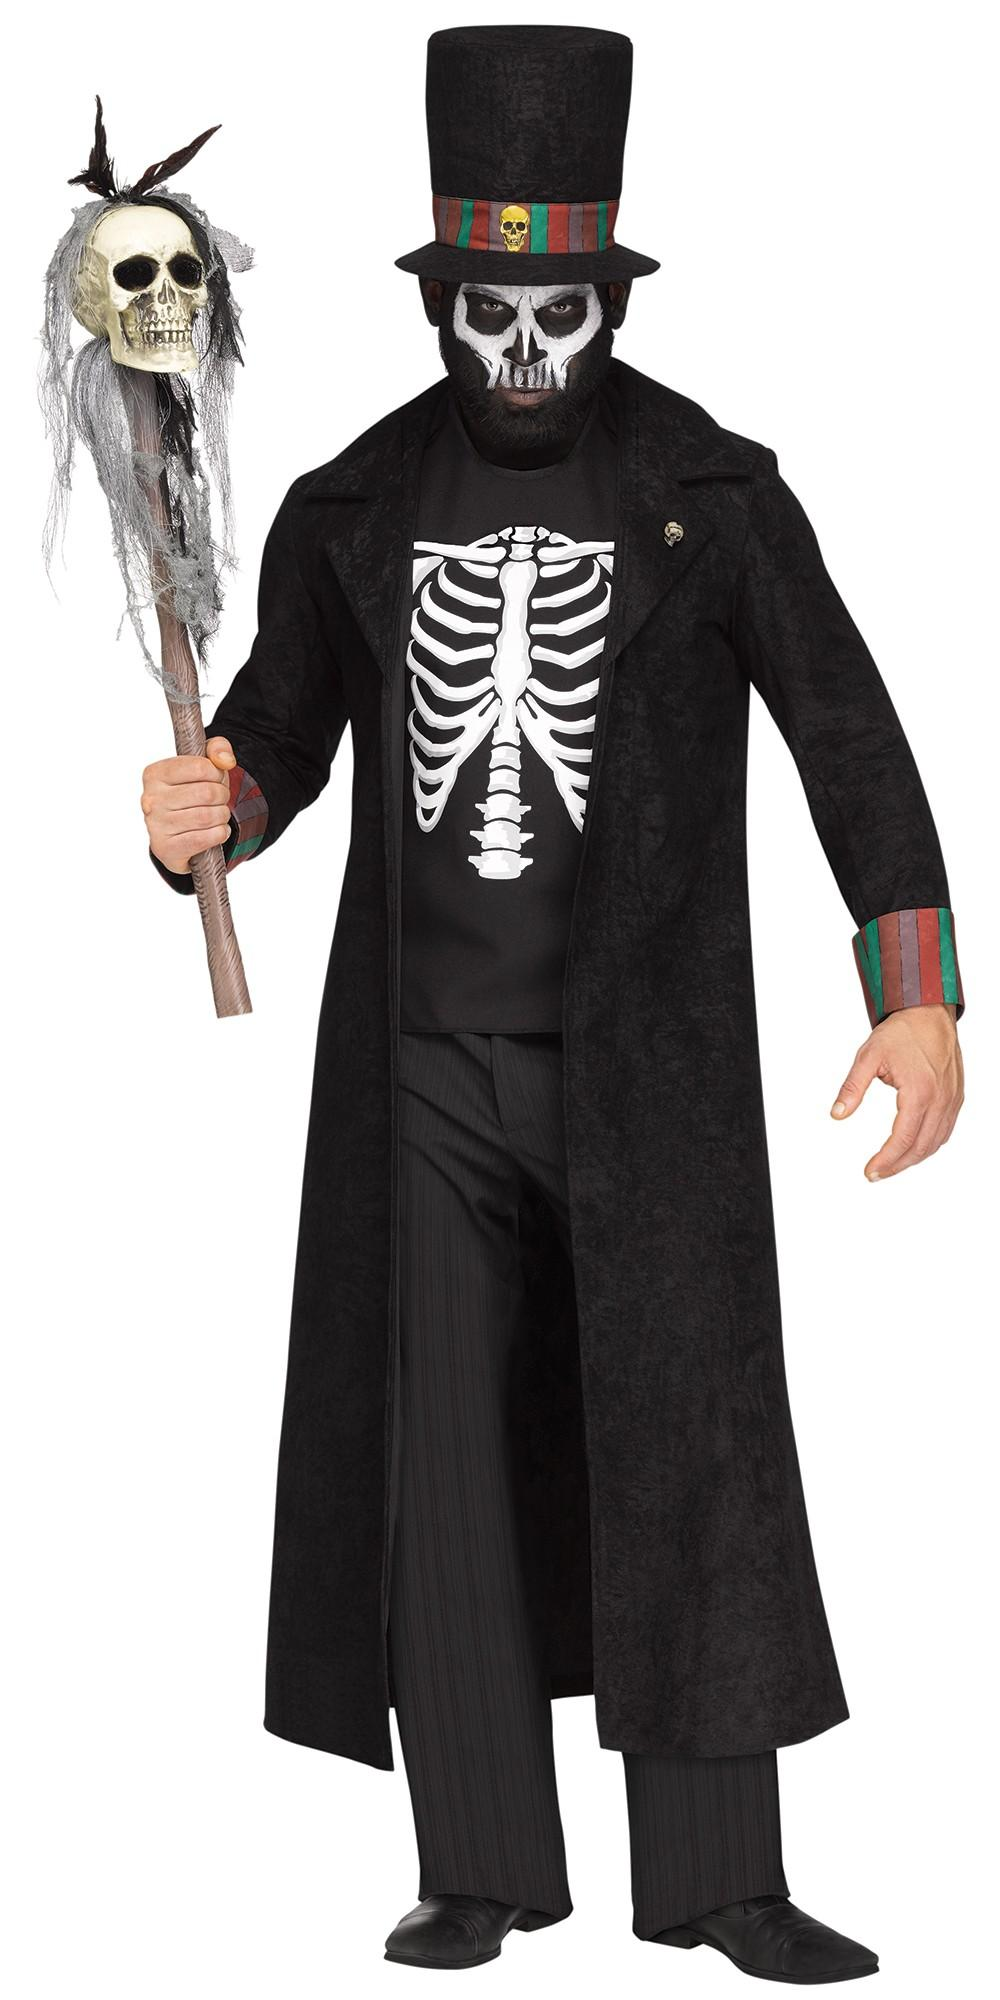 VooDoo King/Witch Doctor Costume | All Ladies Halloween Costumes ...